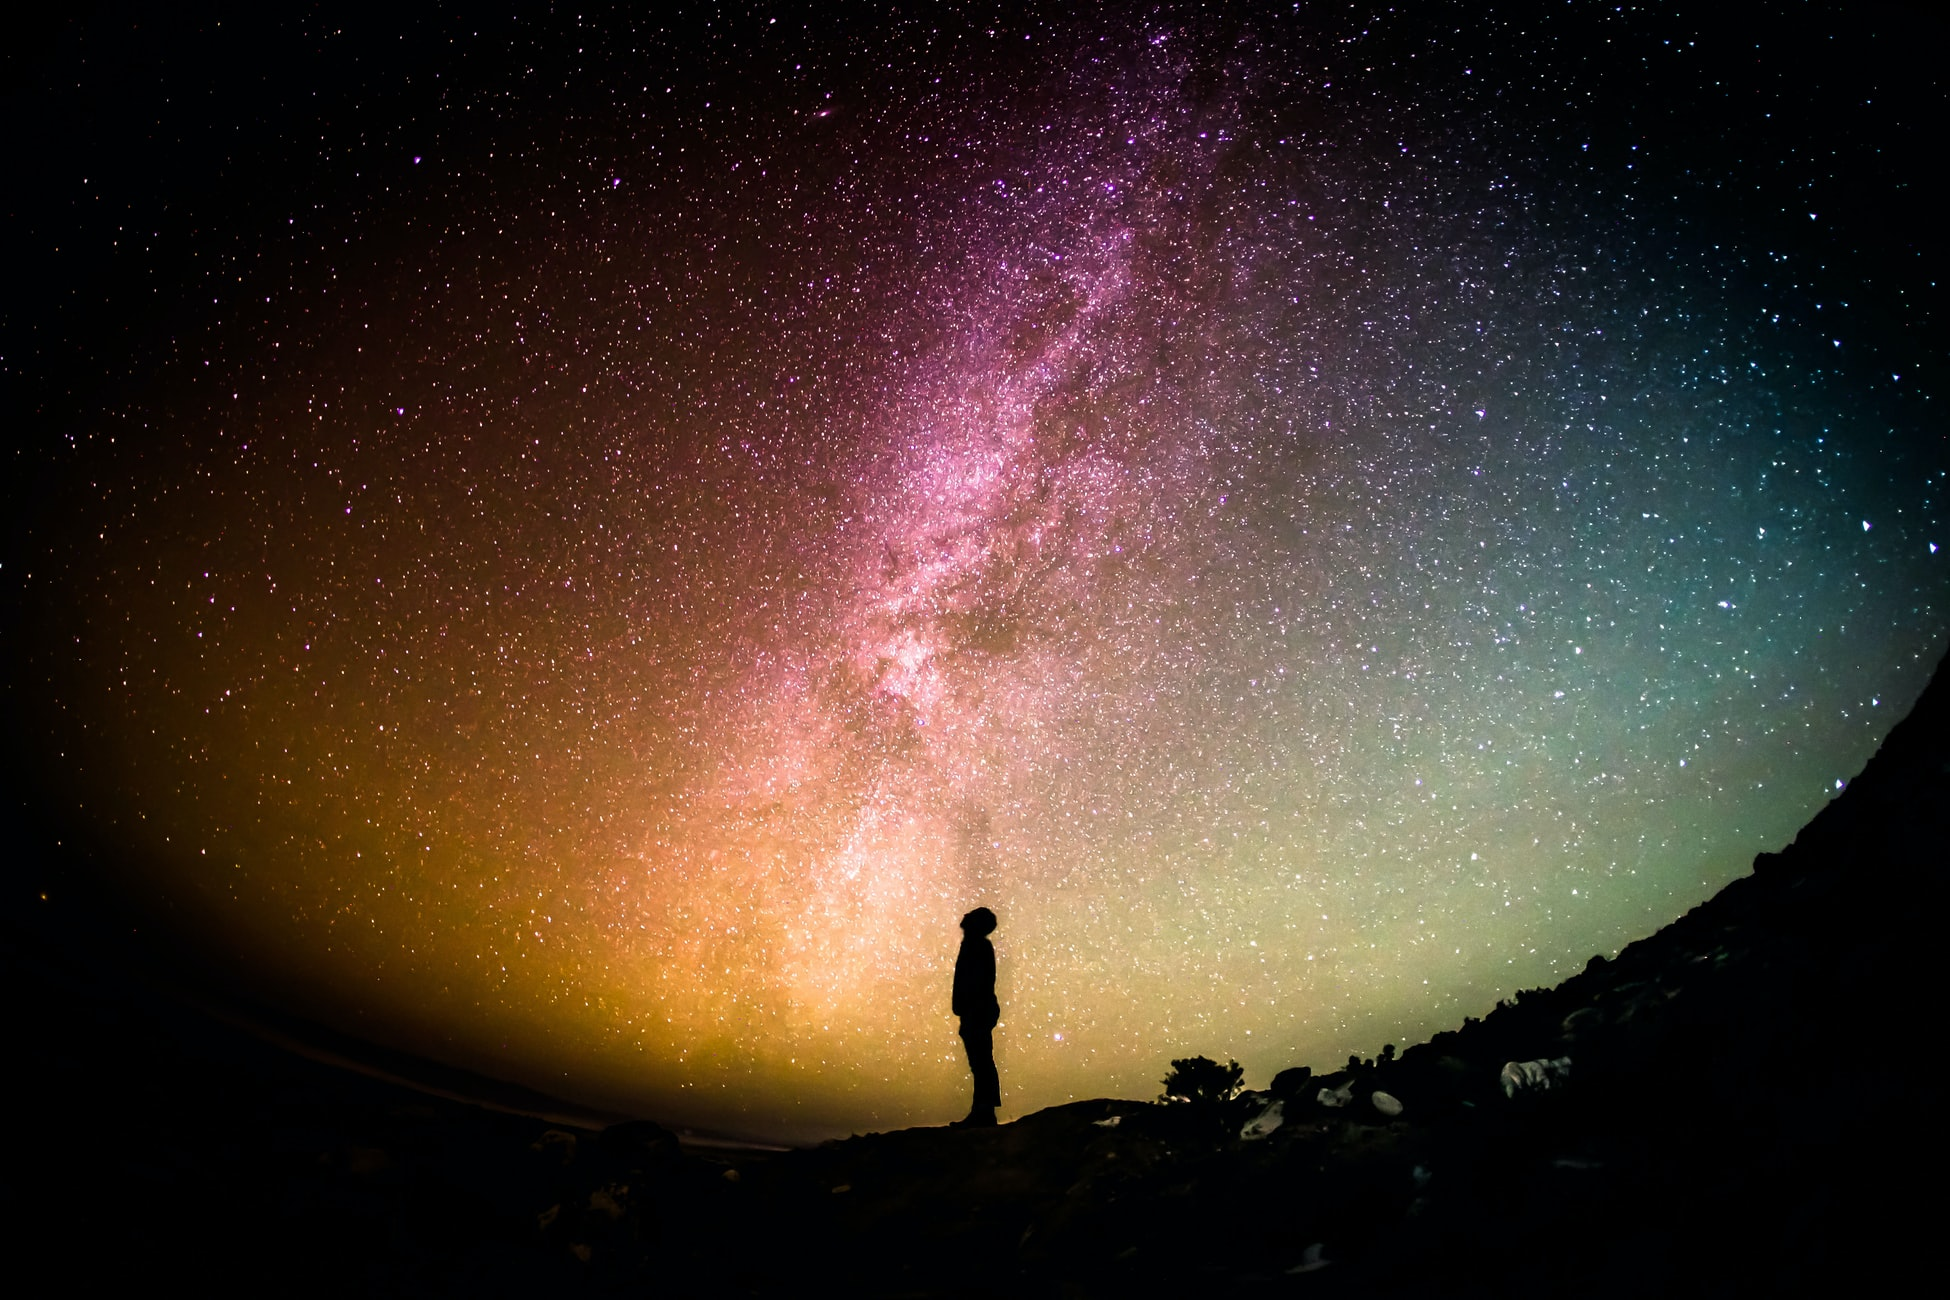 A photo of a long figure silhouetted against a star-filled sky. The sky changes color from yellow to pink to blue. Photo by Greg Rakozy via Unsplash